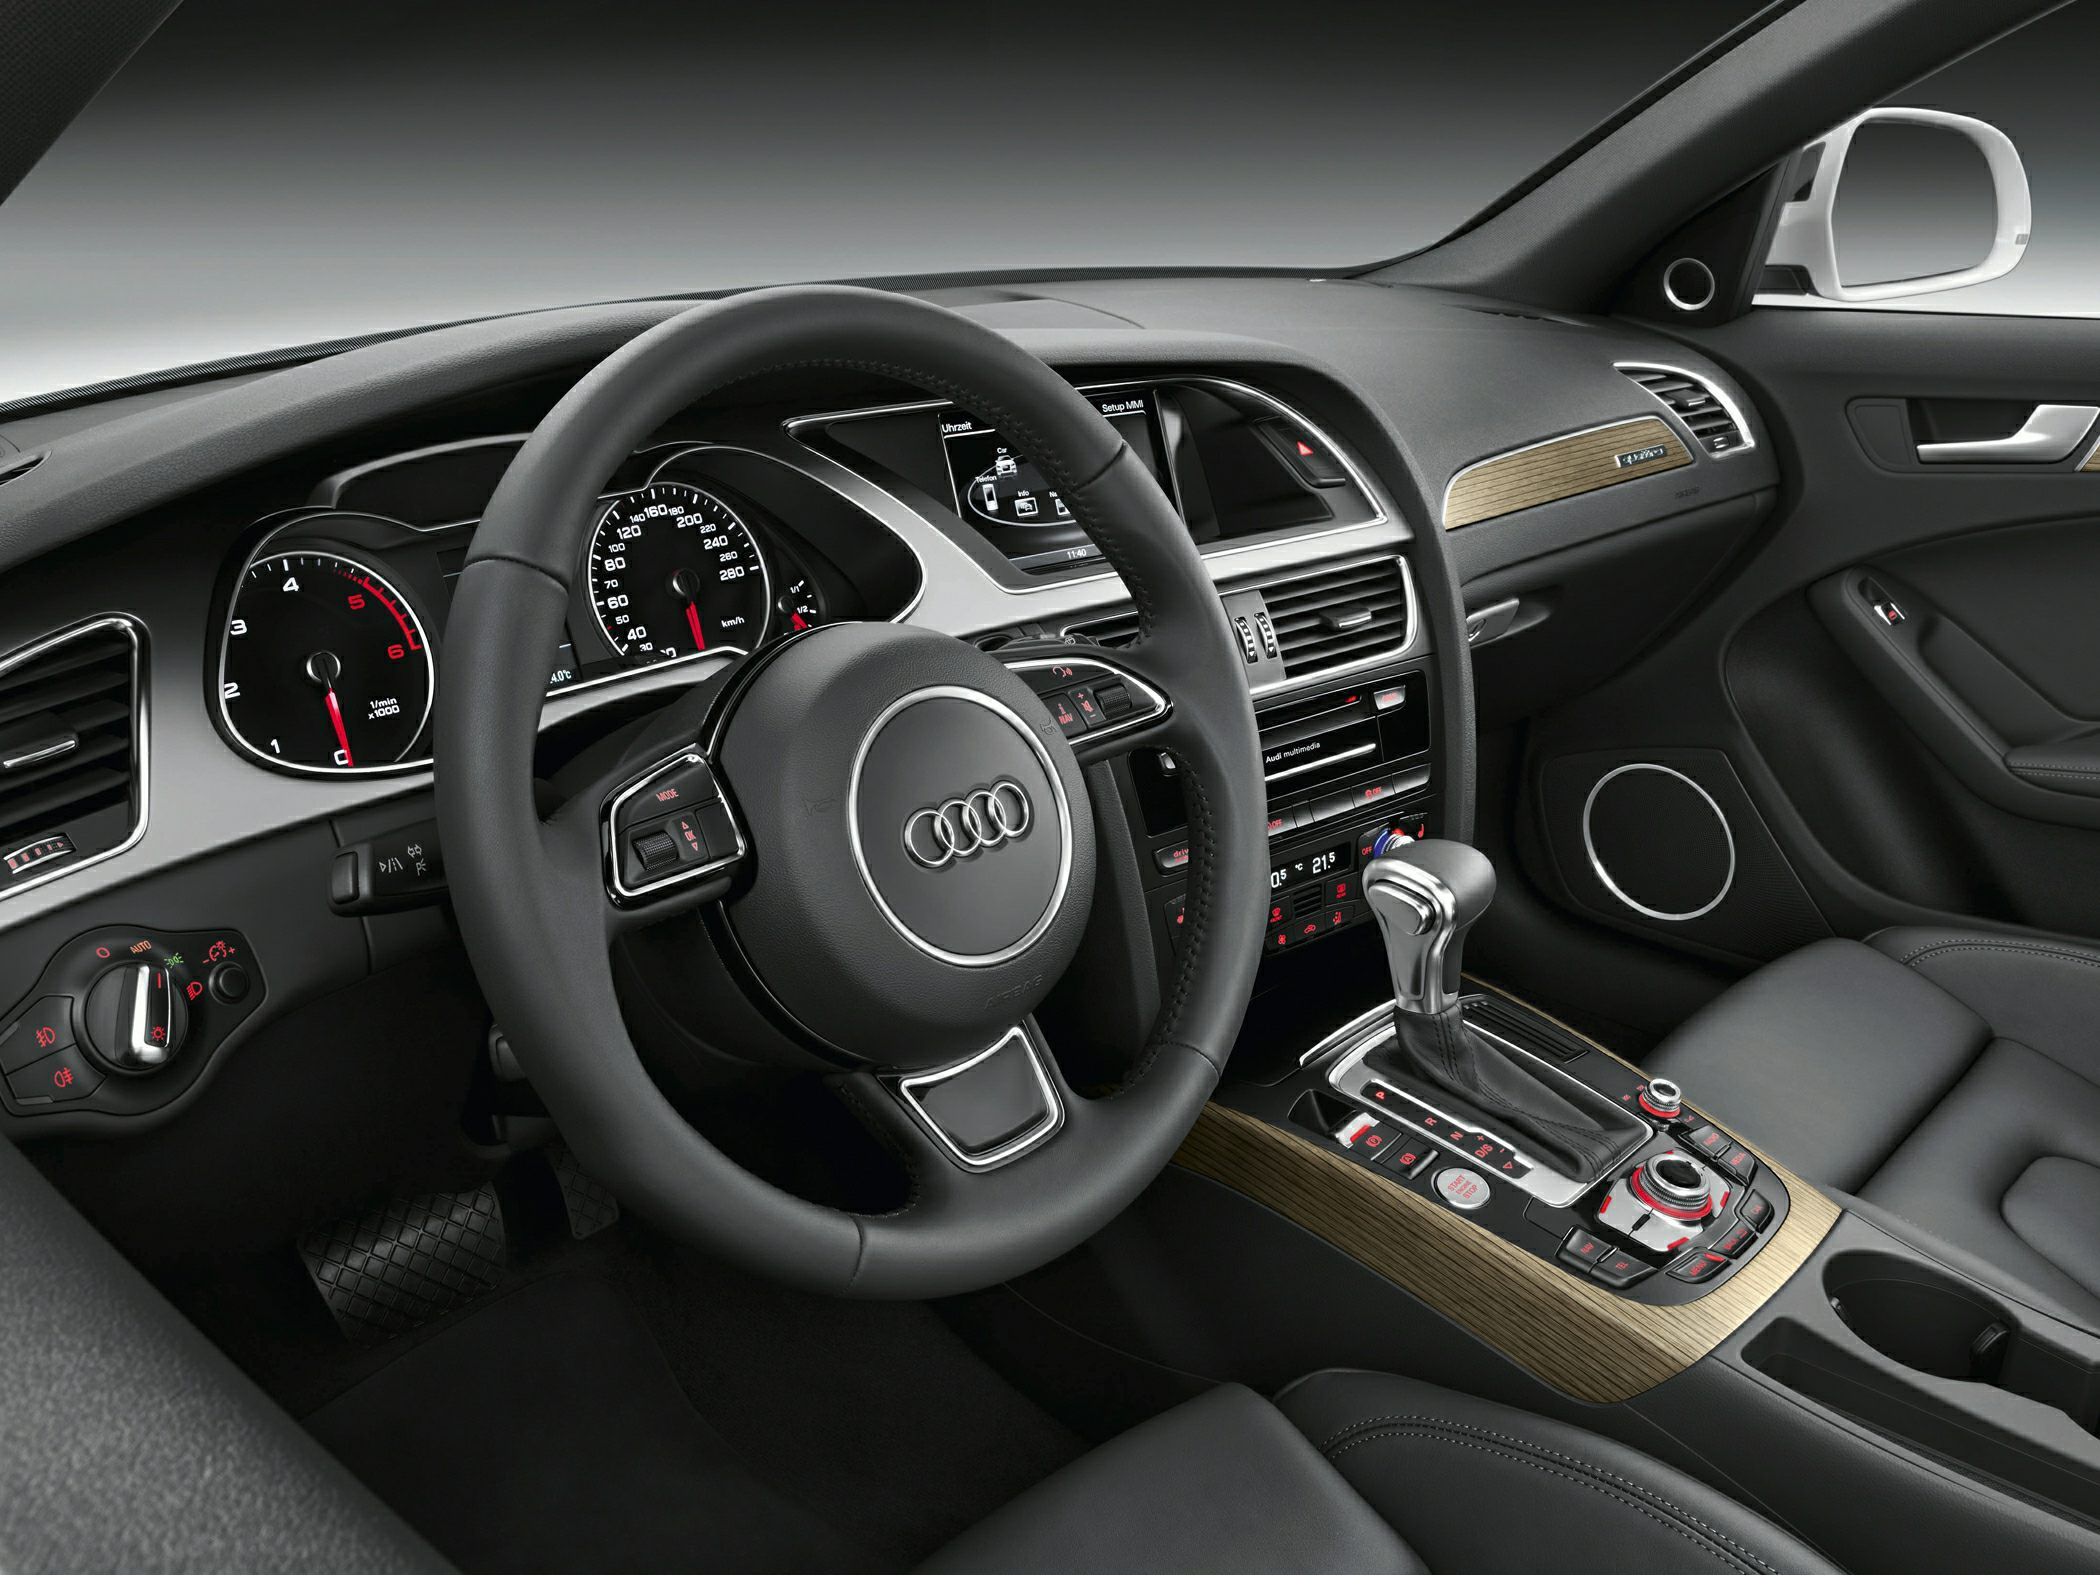 2014 Audi allroad Interior